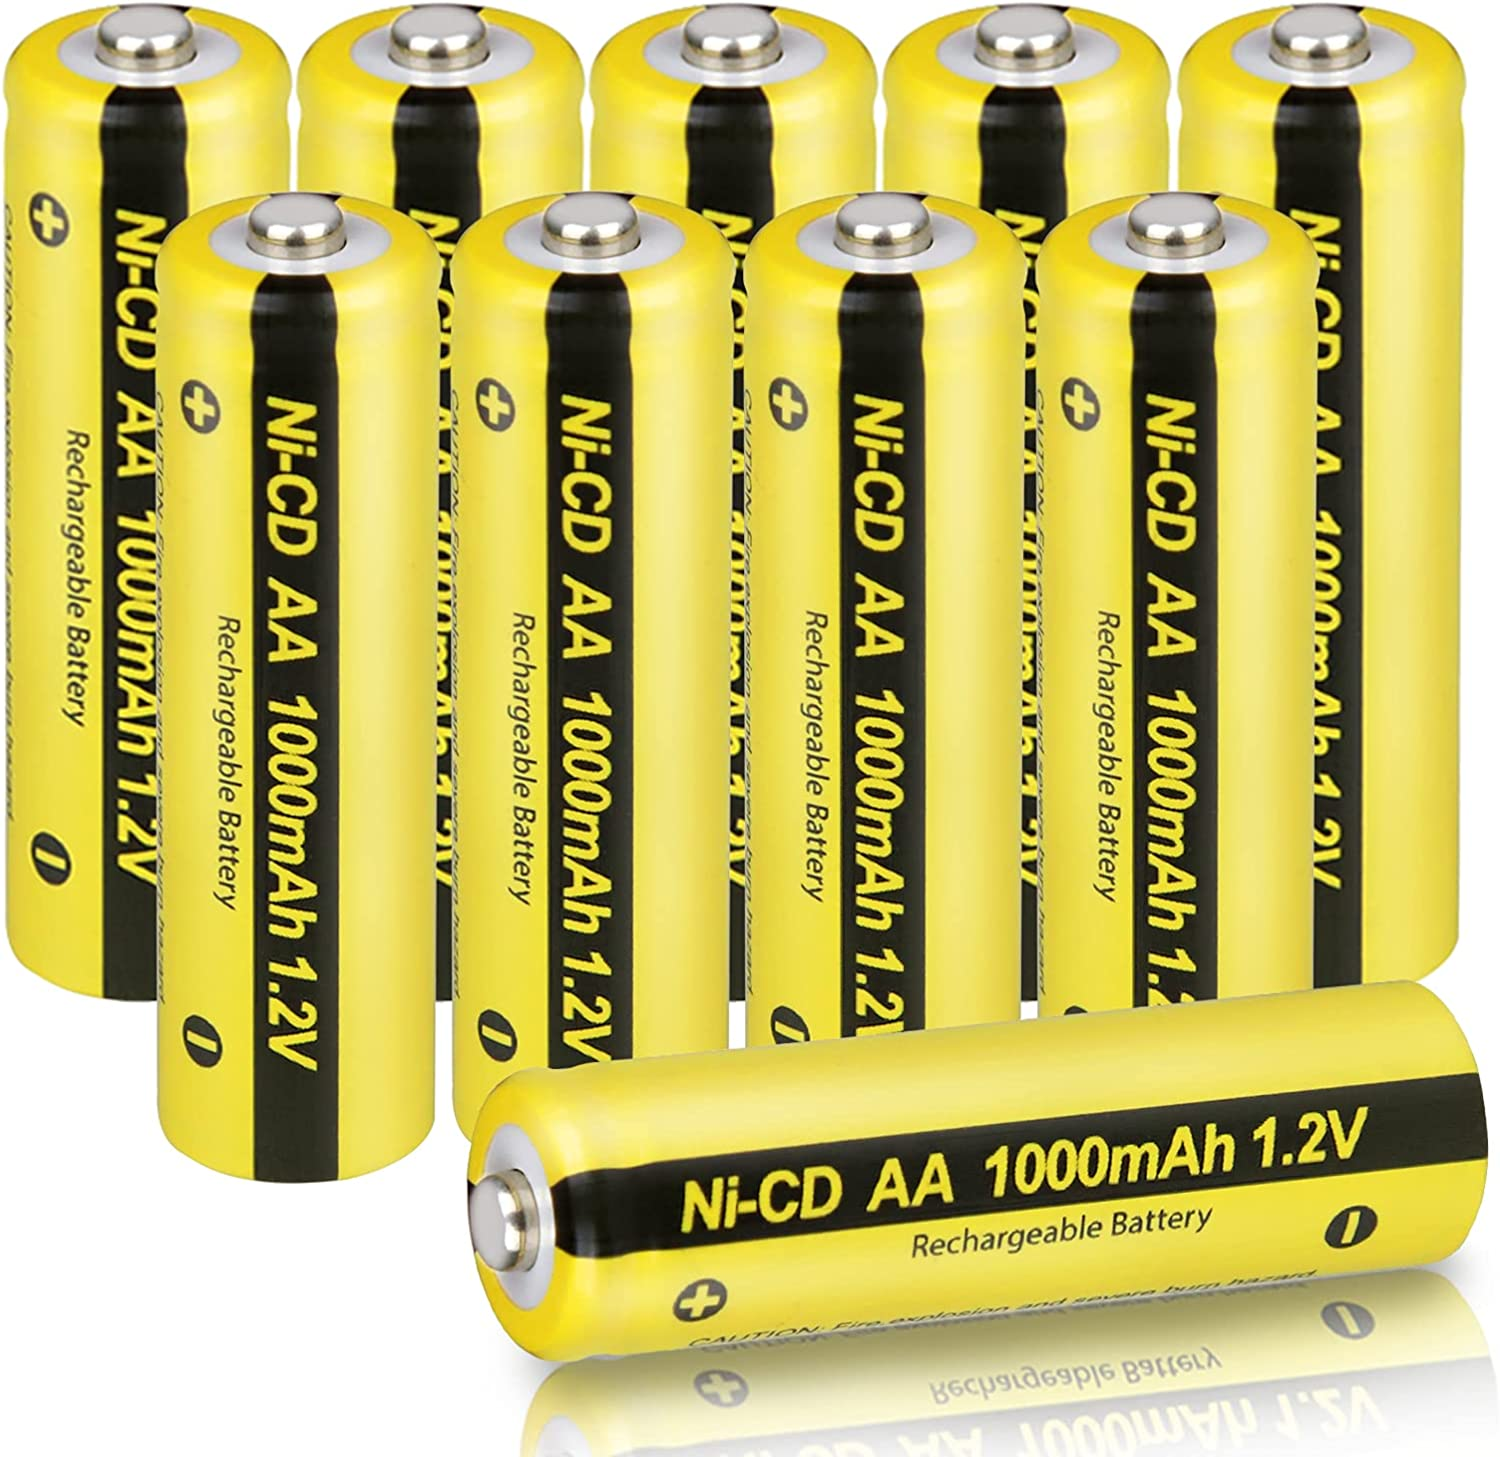 AA 1.2V NICD 1000mAh Rechargeable Battery for Garden Landscaping Solar Lights(10-Pack)